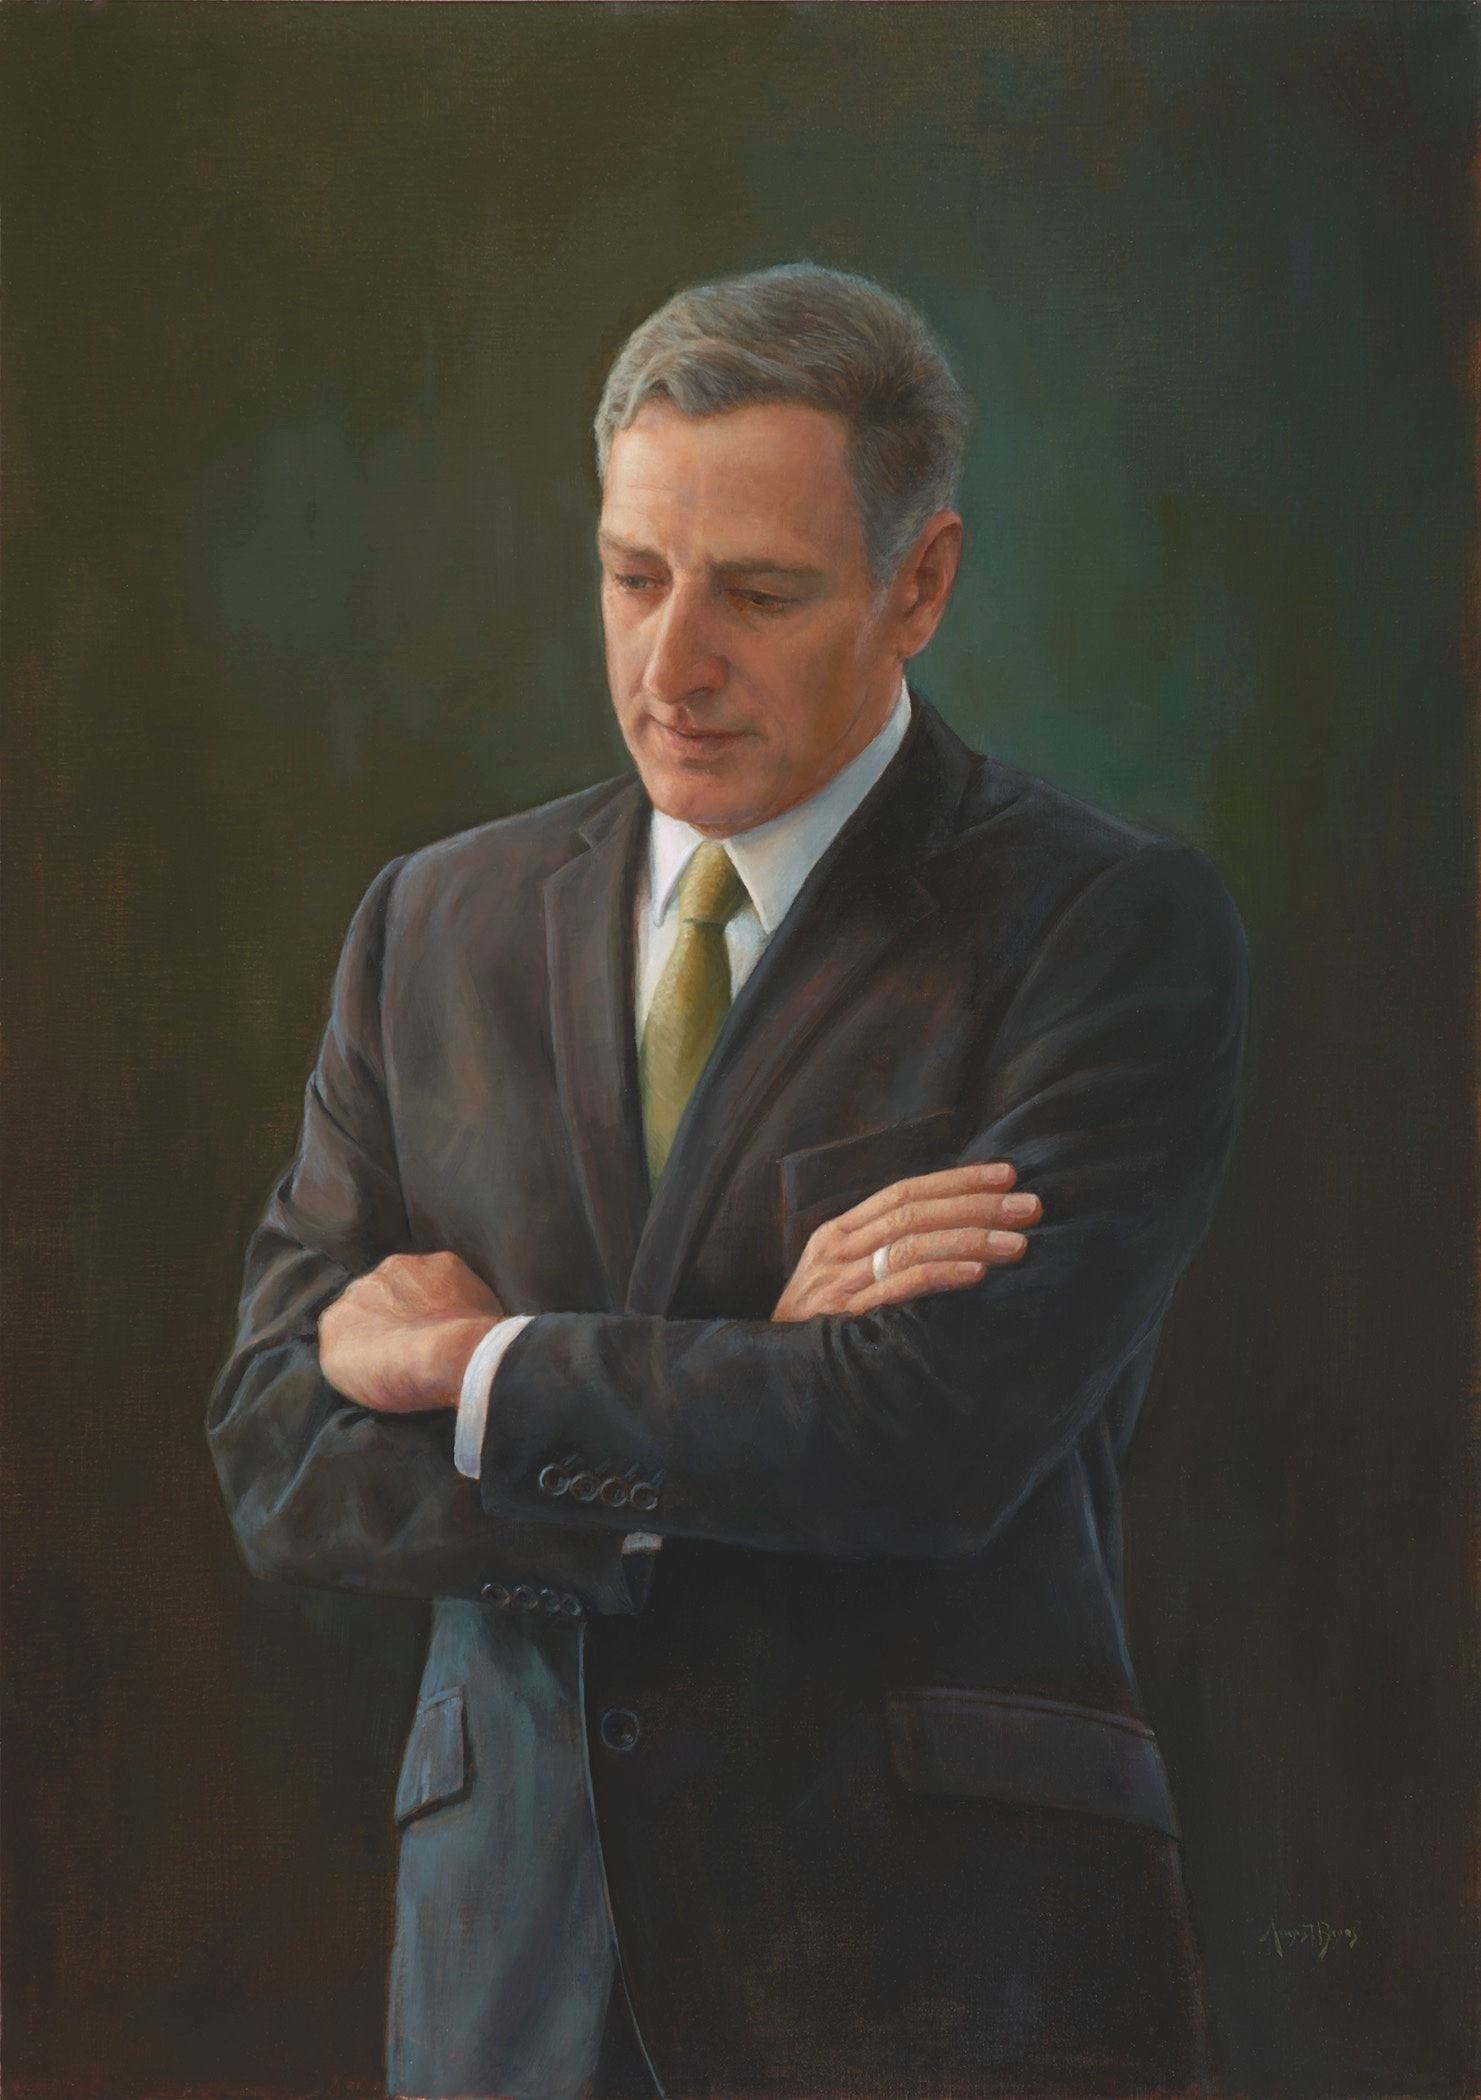 Vermont Governor of Peter Shumlin